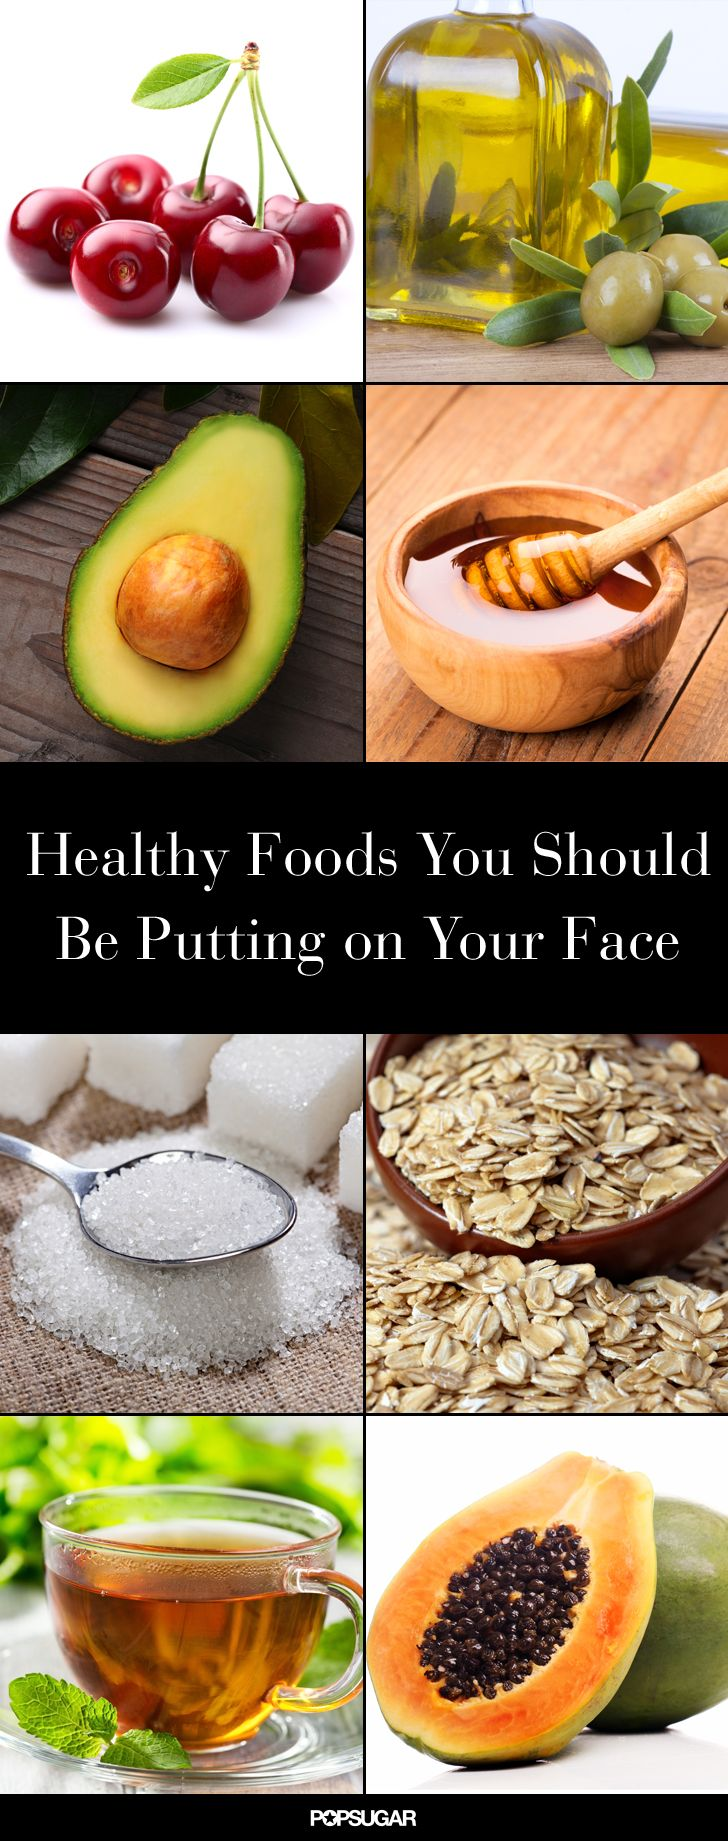 10 Foods That Belong on Your Face  #DIYBeauty